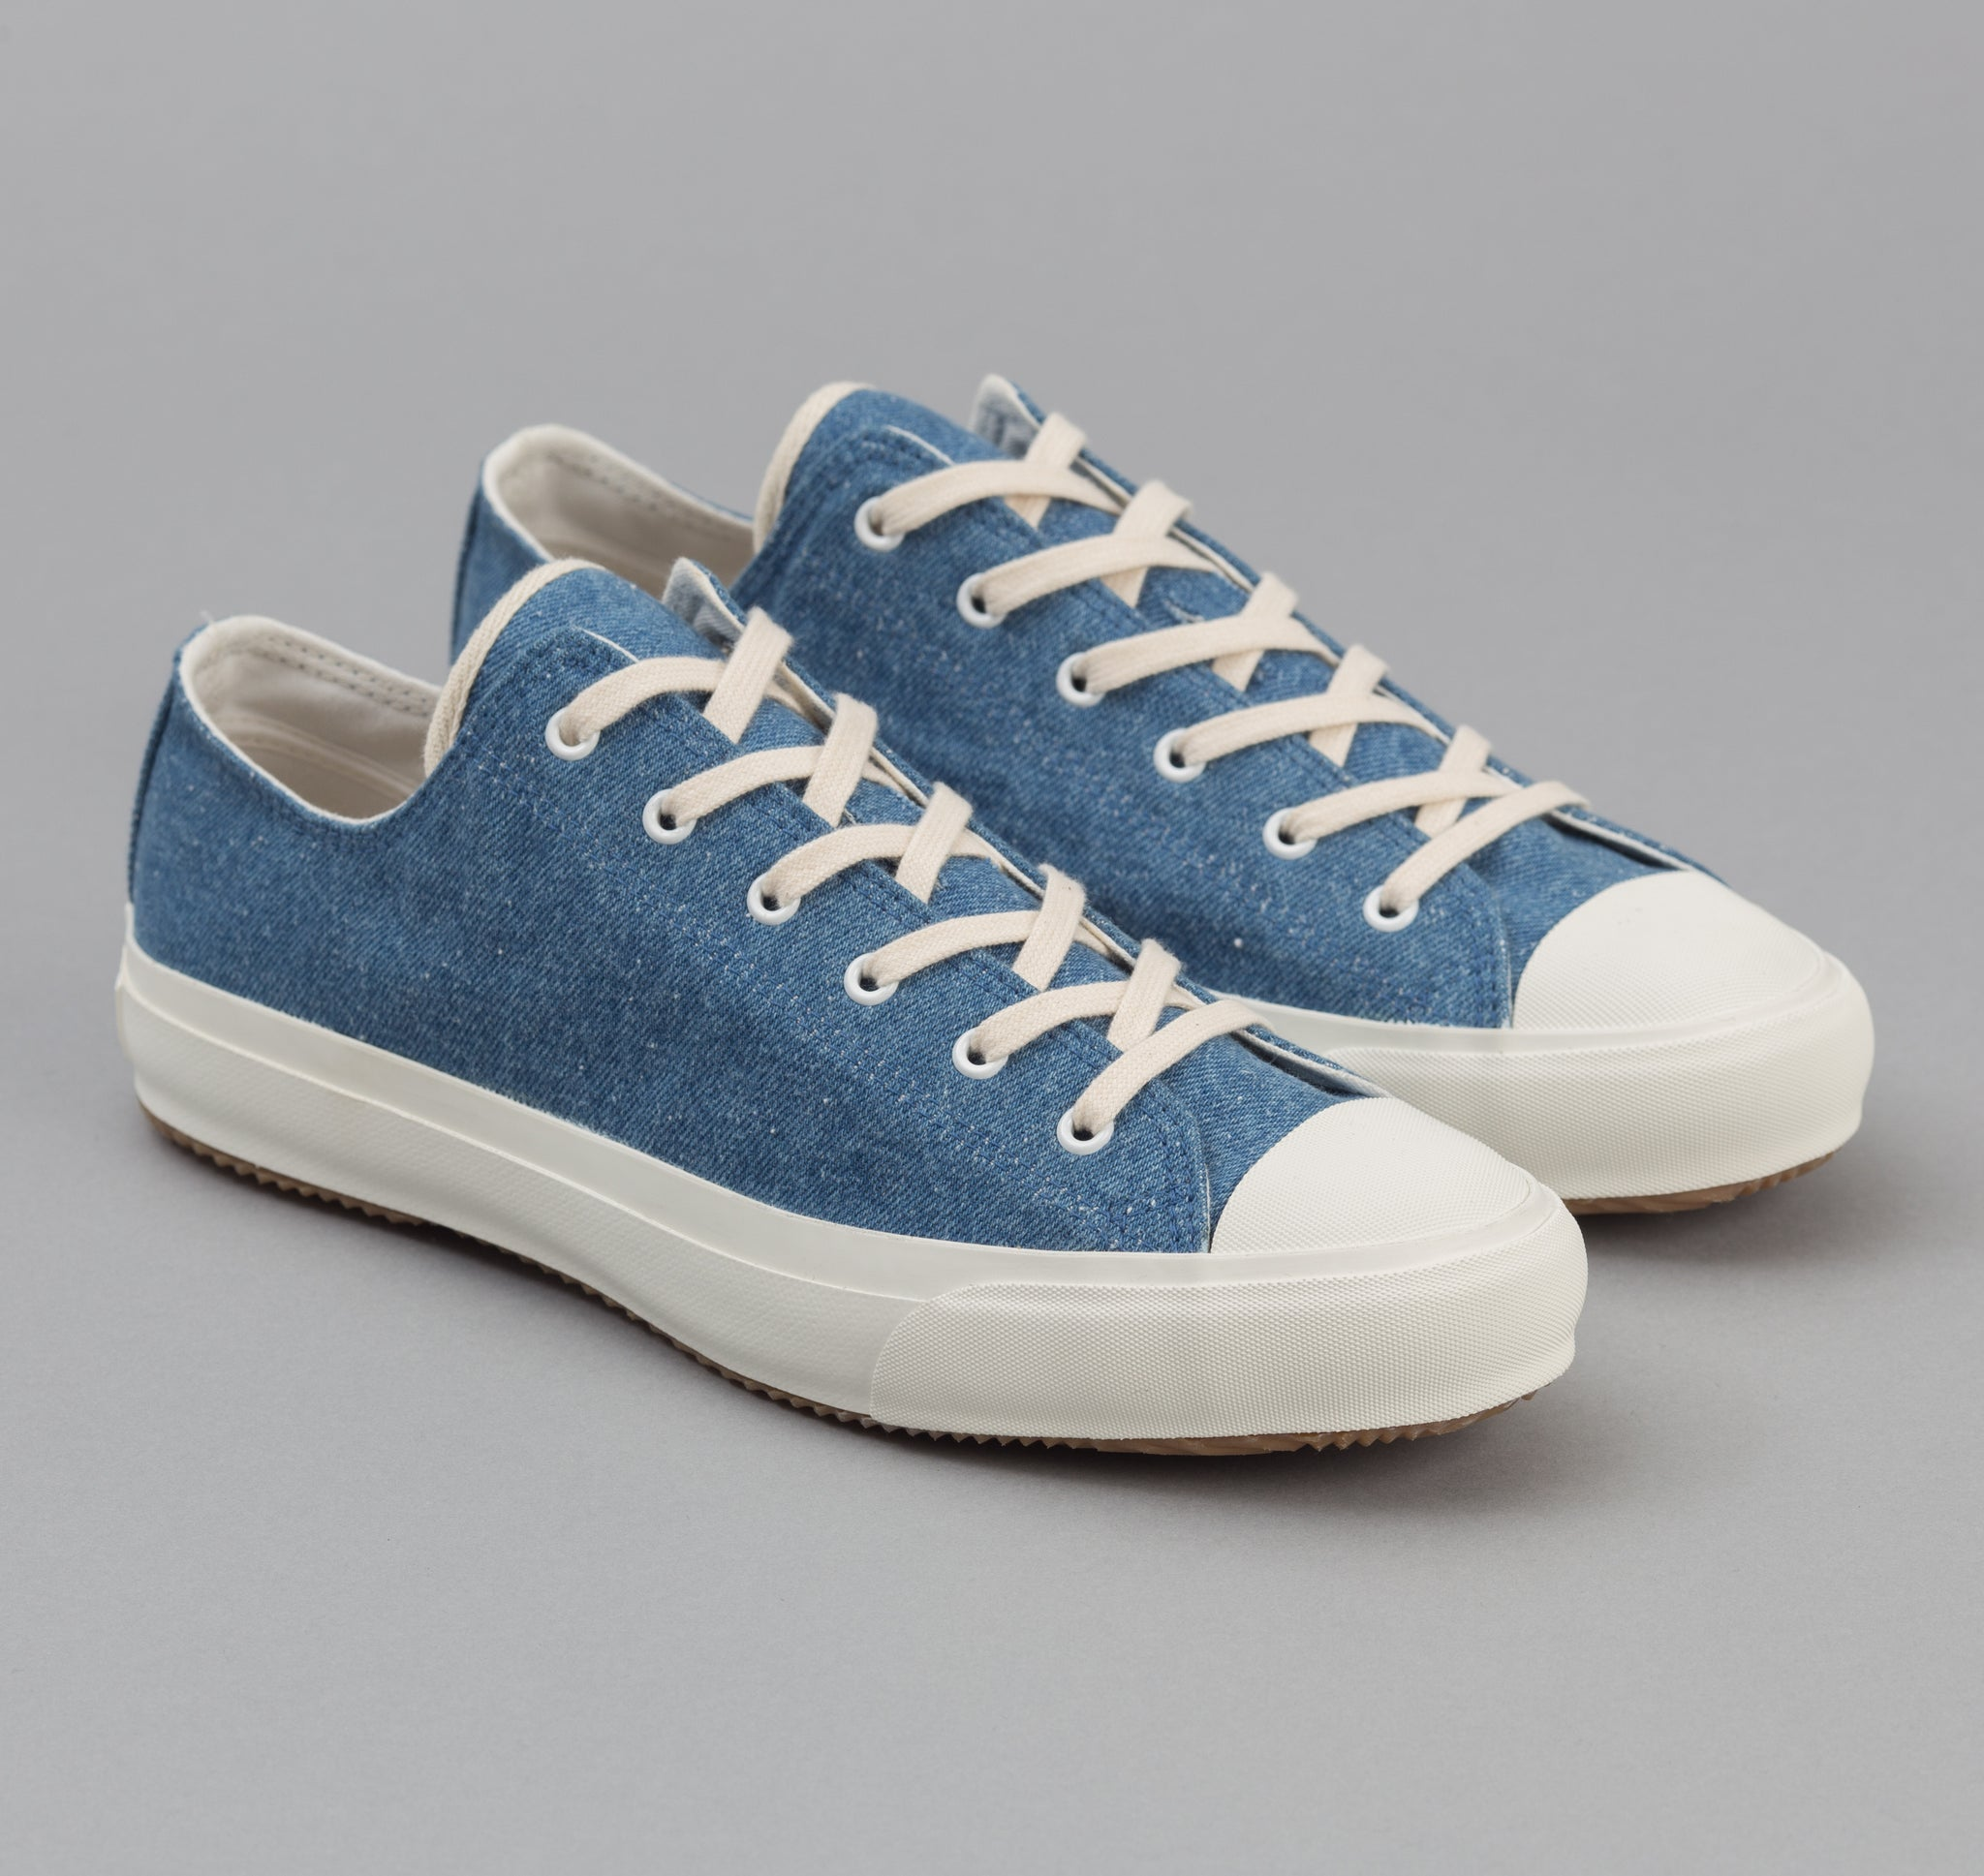 The Hill-Side - Standard Low Top, Pale Indigo Washed Denim - SN2-325 - image 1